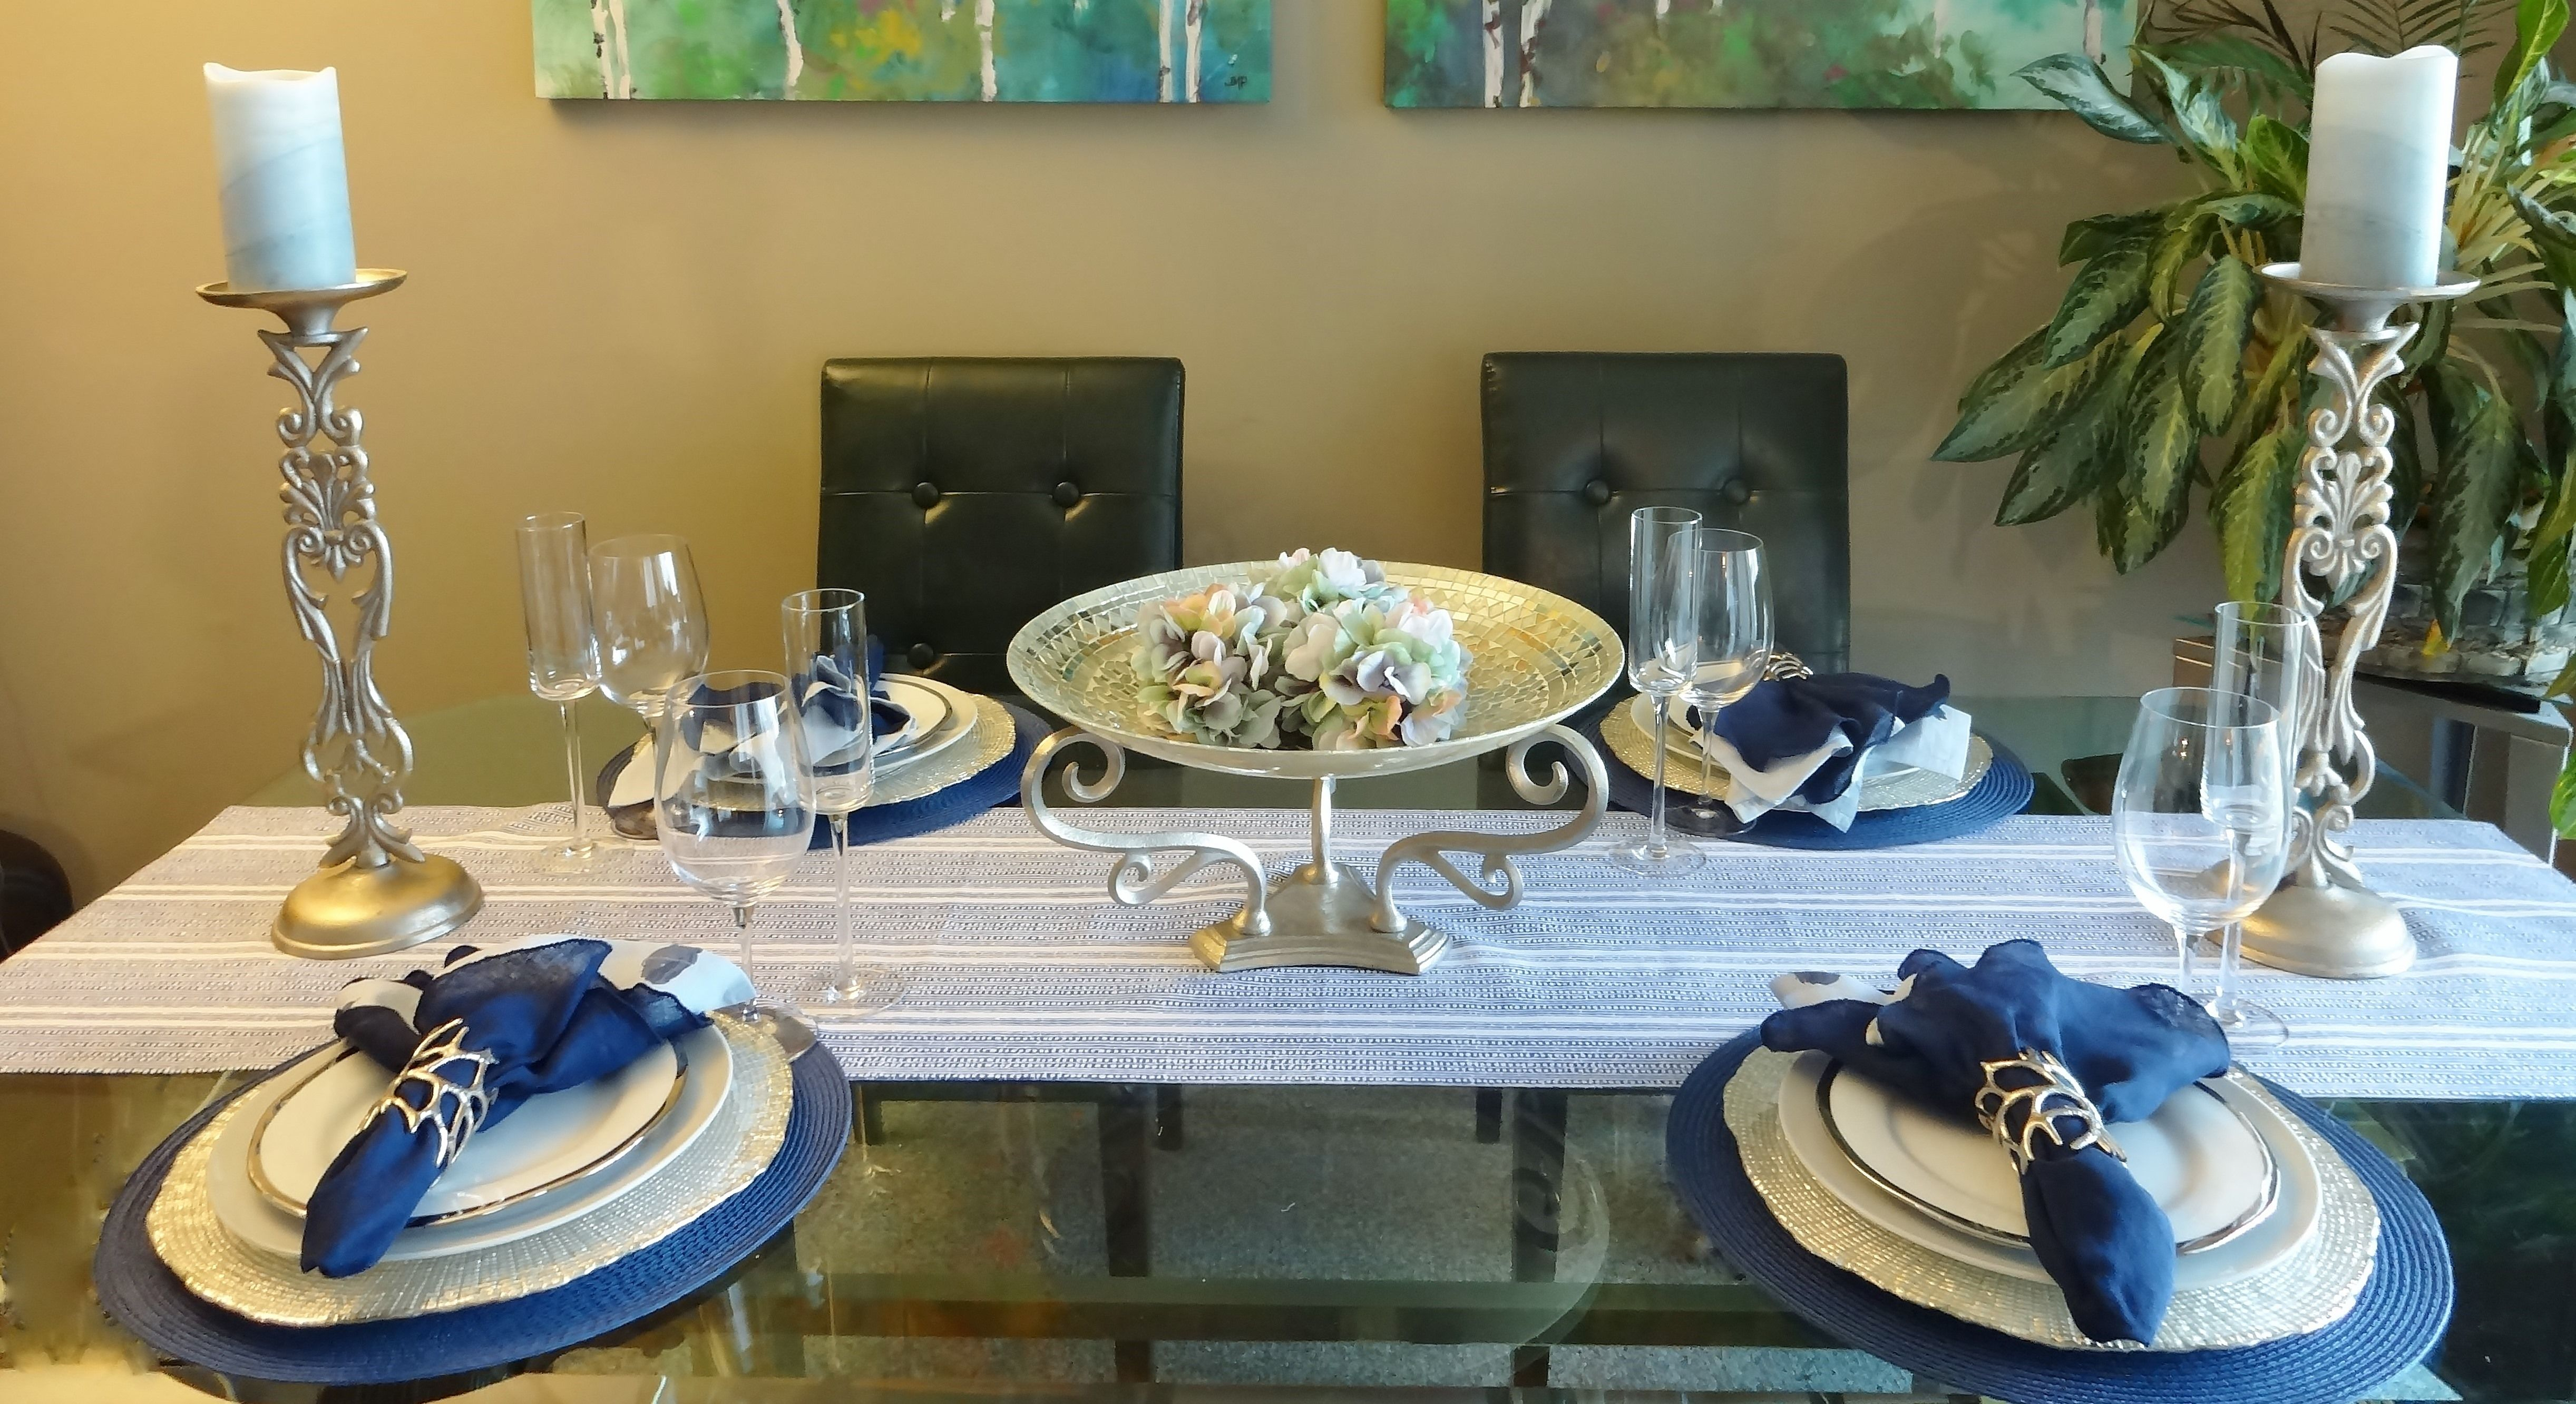 Dining Room Table Setting Pier 1 (With images) Dining